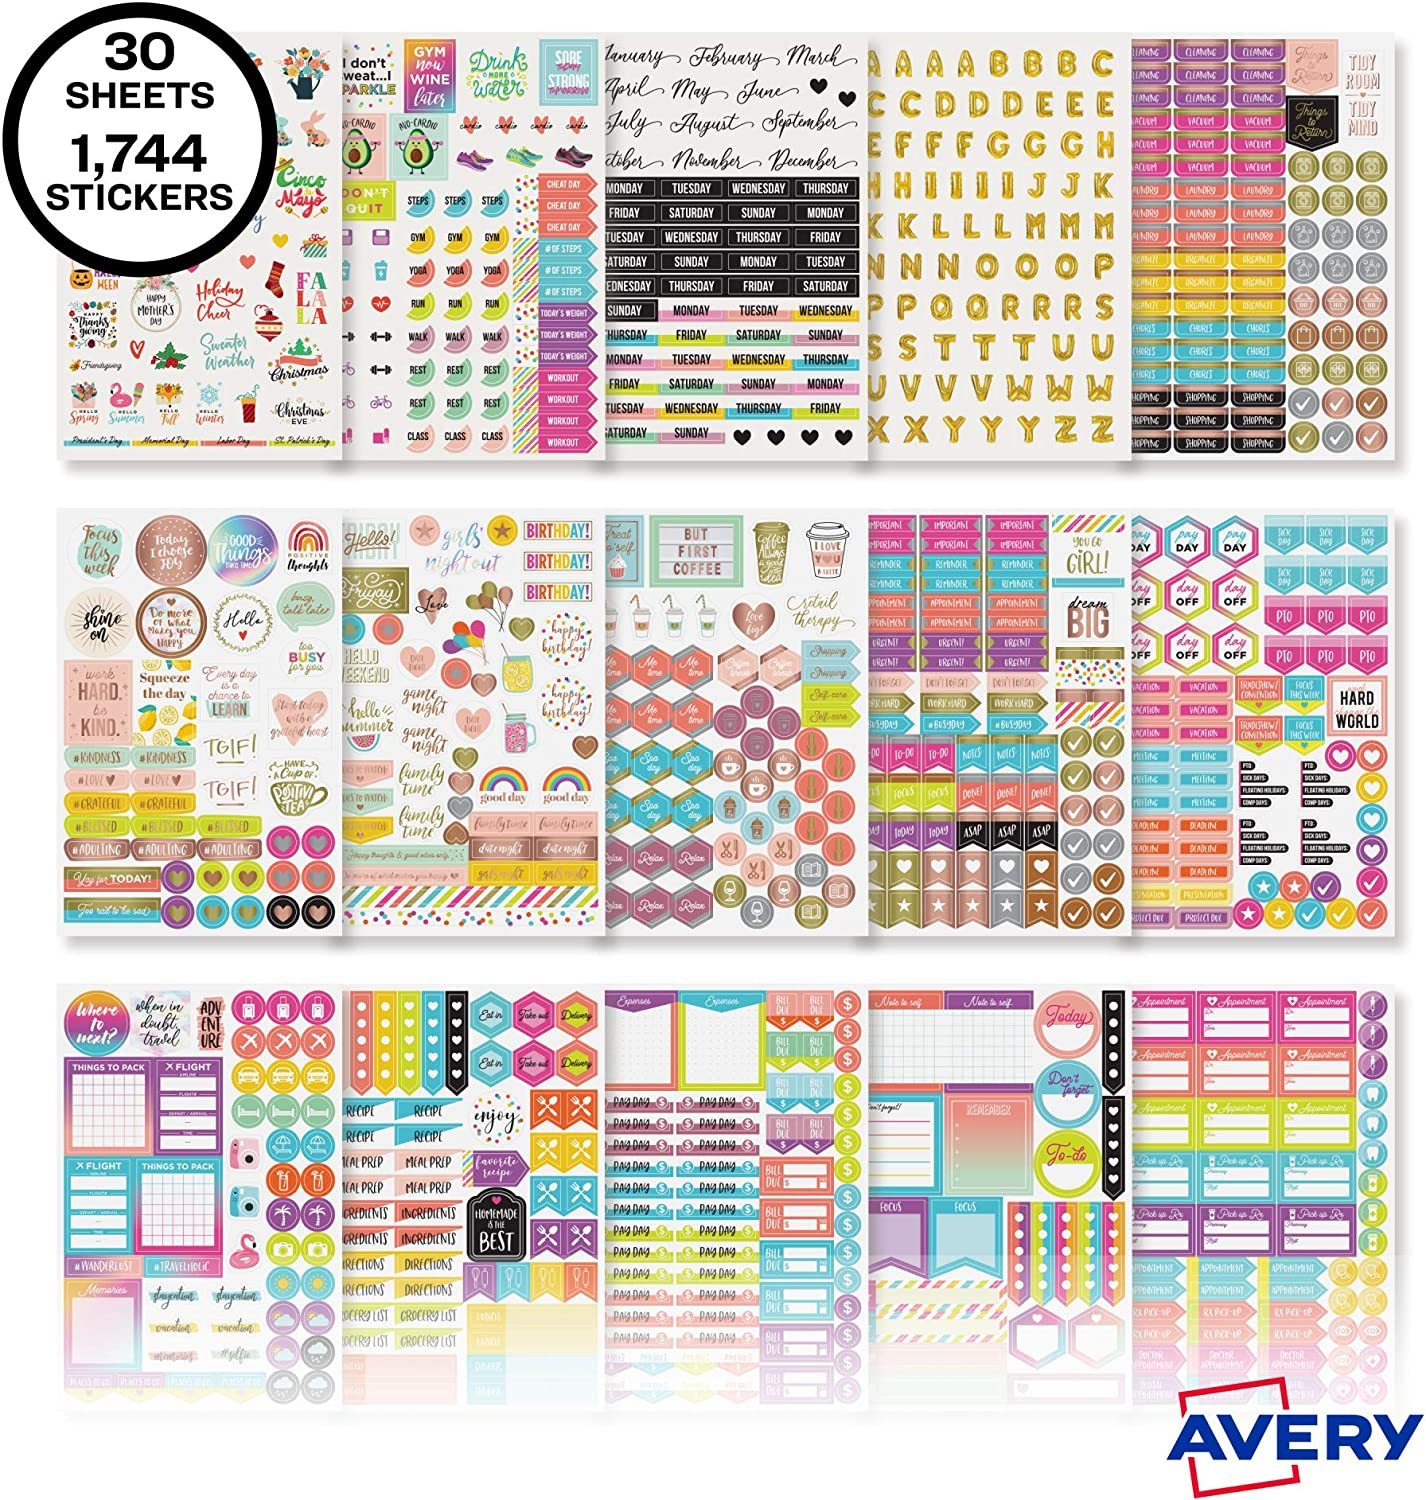 Weekly Calendar and Journal Sticker Sheets 1,744 Stickers Avery Planner Stickers Variety Pack 6785